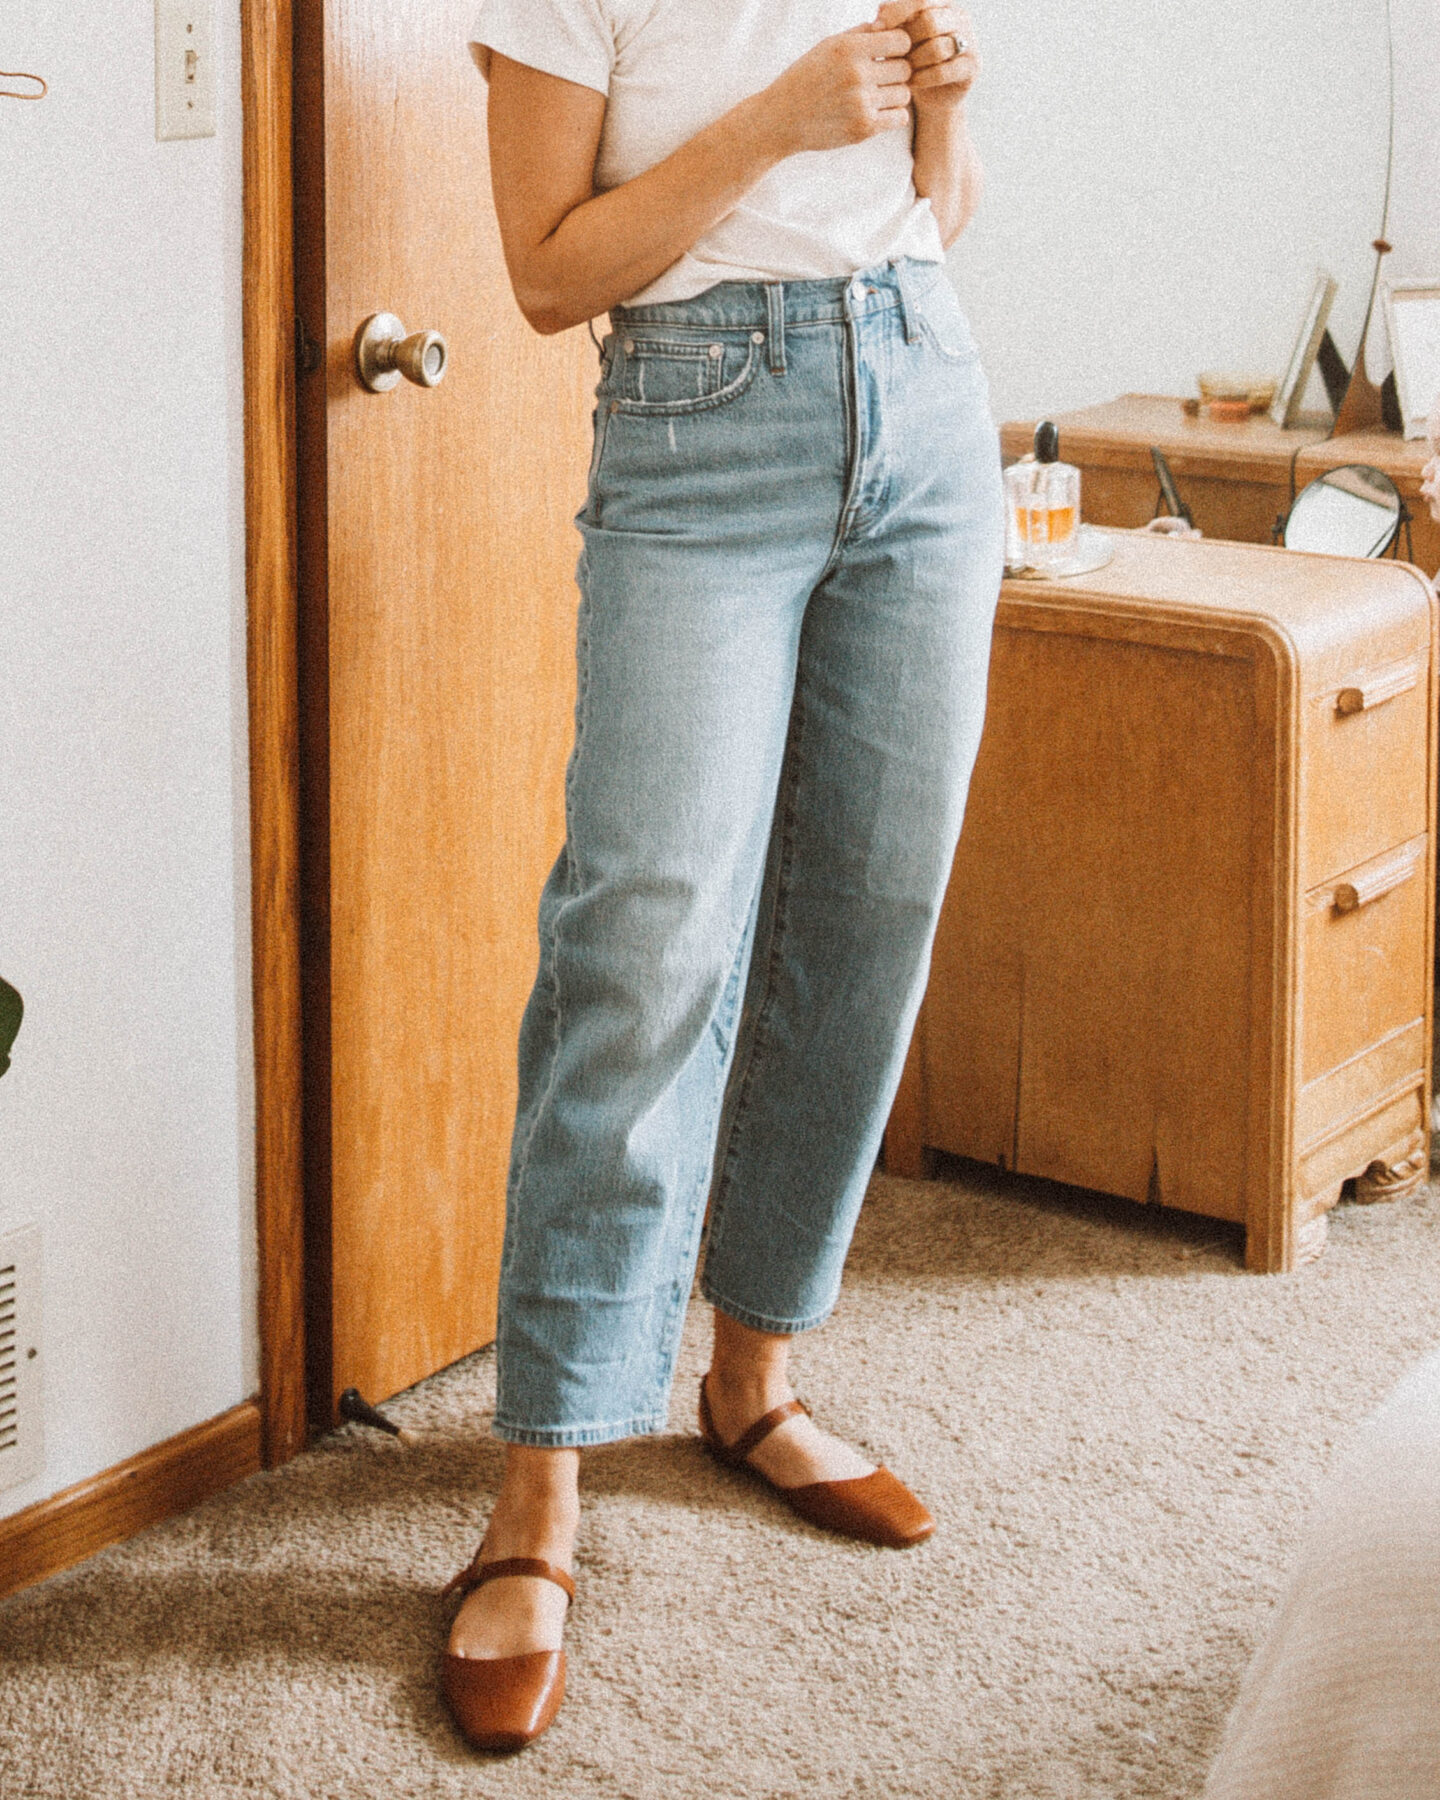 New Spring pieces from  Madewell & J.Crew: Soft, Easy Basics, balloon jean